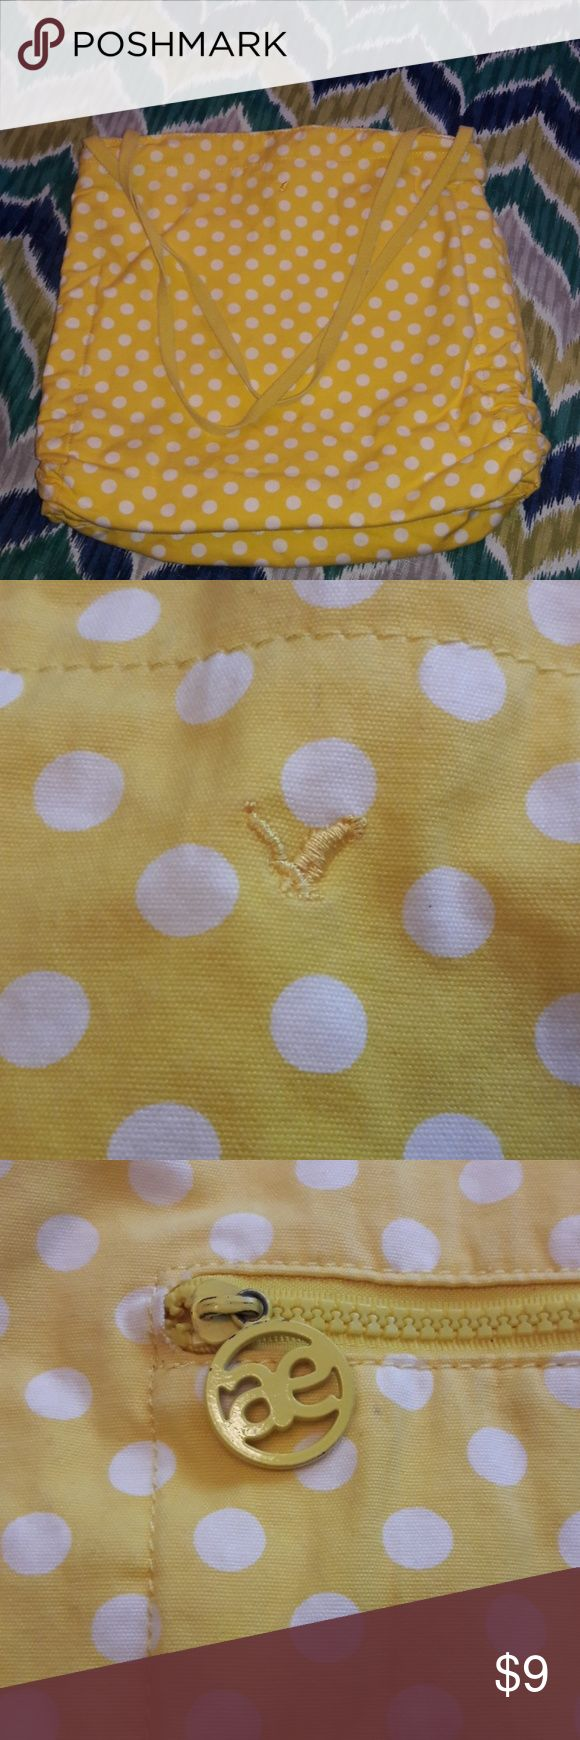 American Eagle Tote Yellow polka dots! American Eagle canvas yellow polka dot tote bag. 14 in tall 16 in wide. American Eagle Outfitters Bags Totes